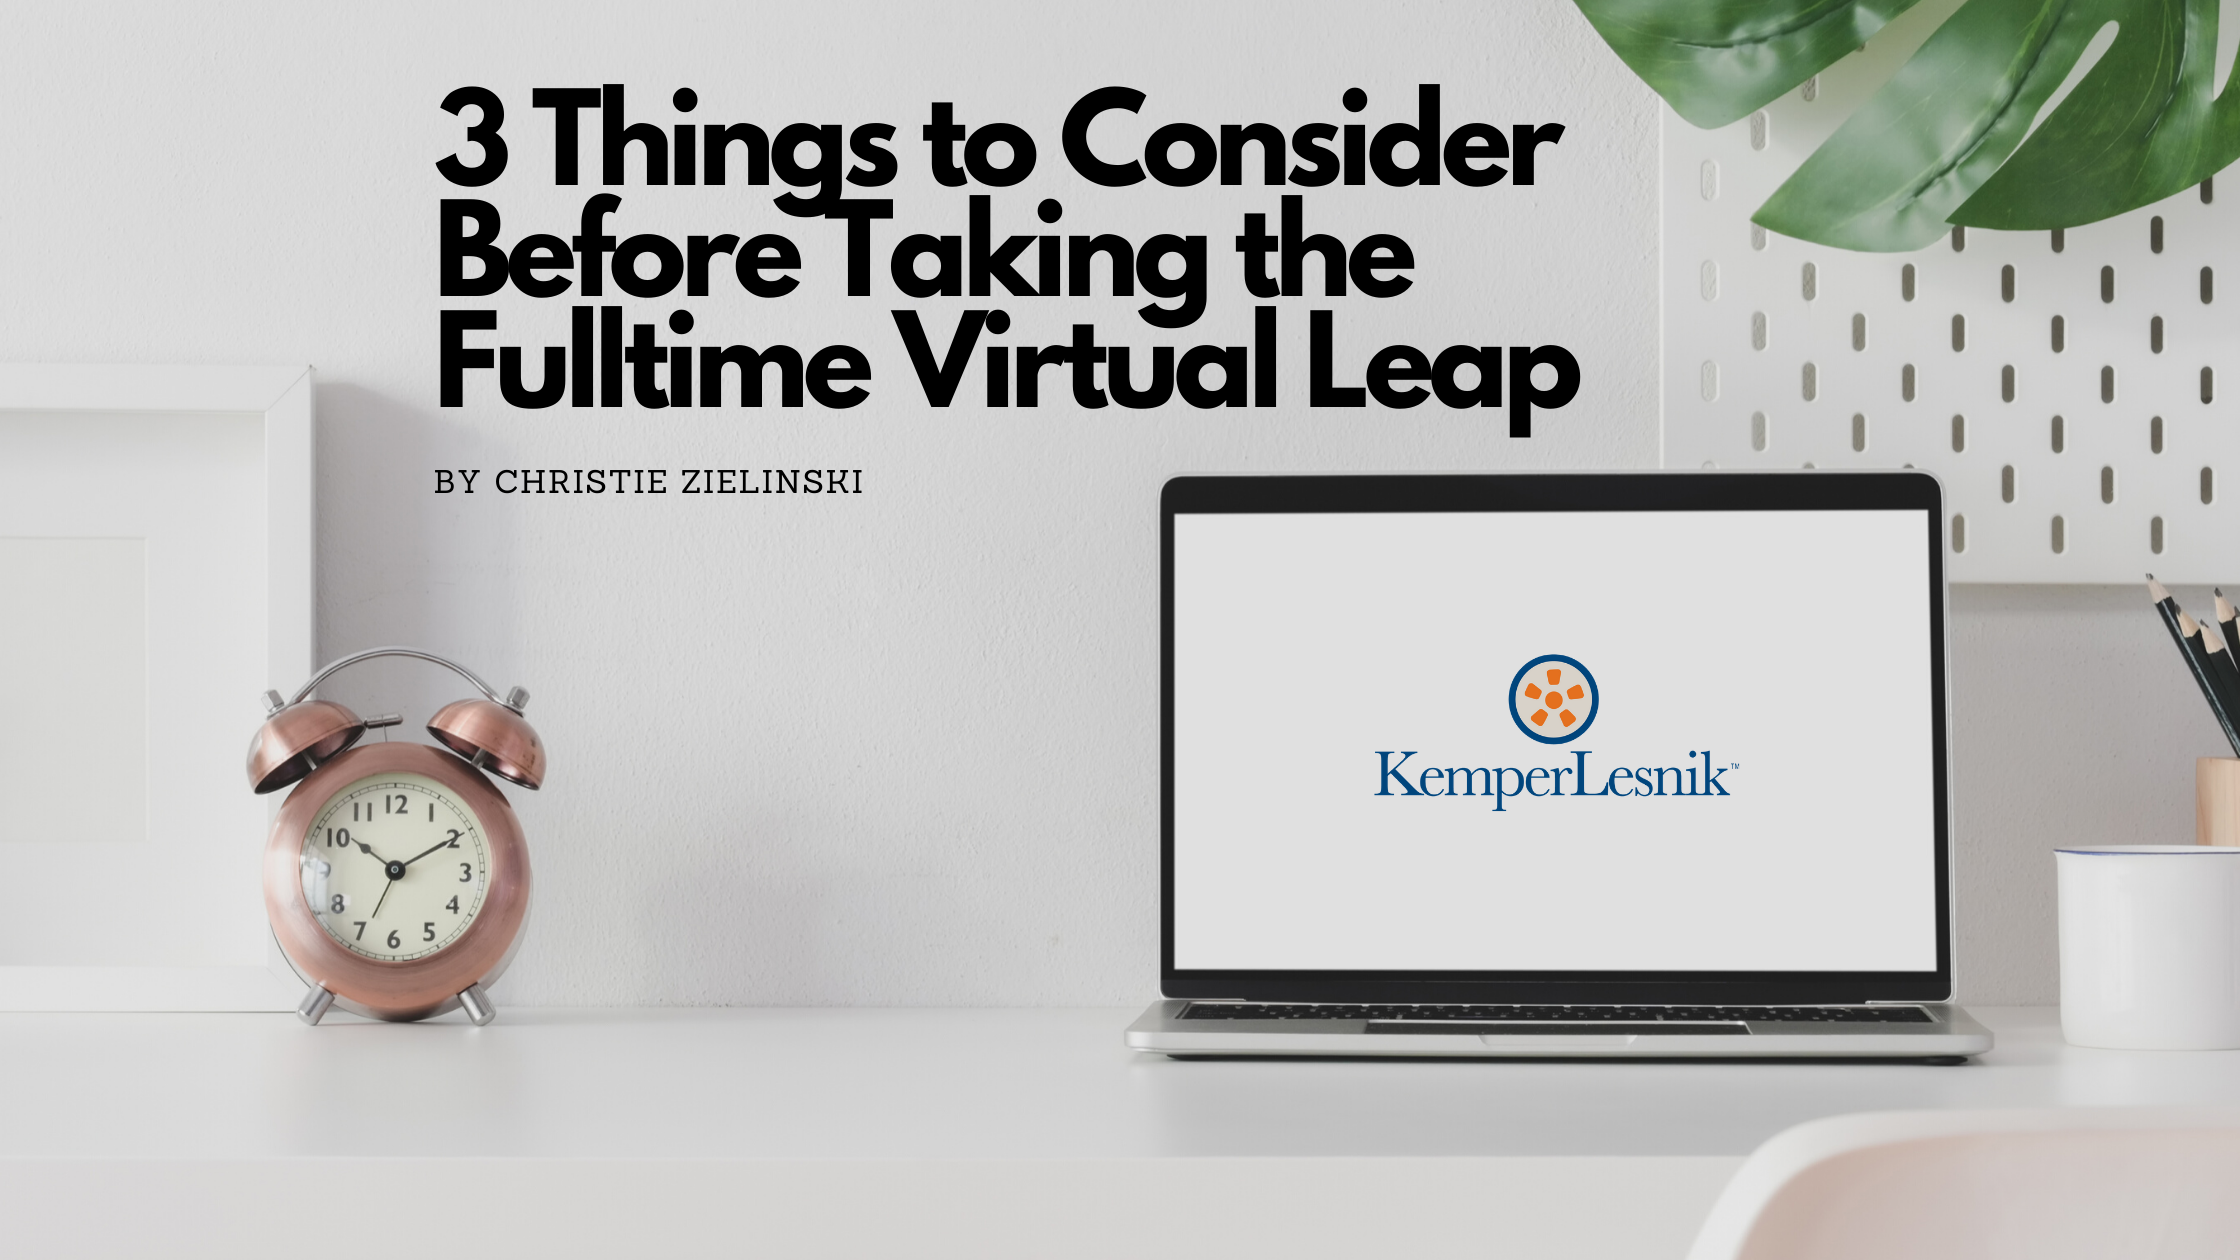 Agencies: Consider These Three Things Before You Make the Fulltime Virtual Leap